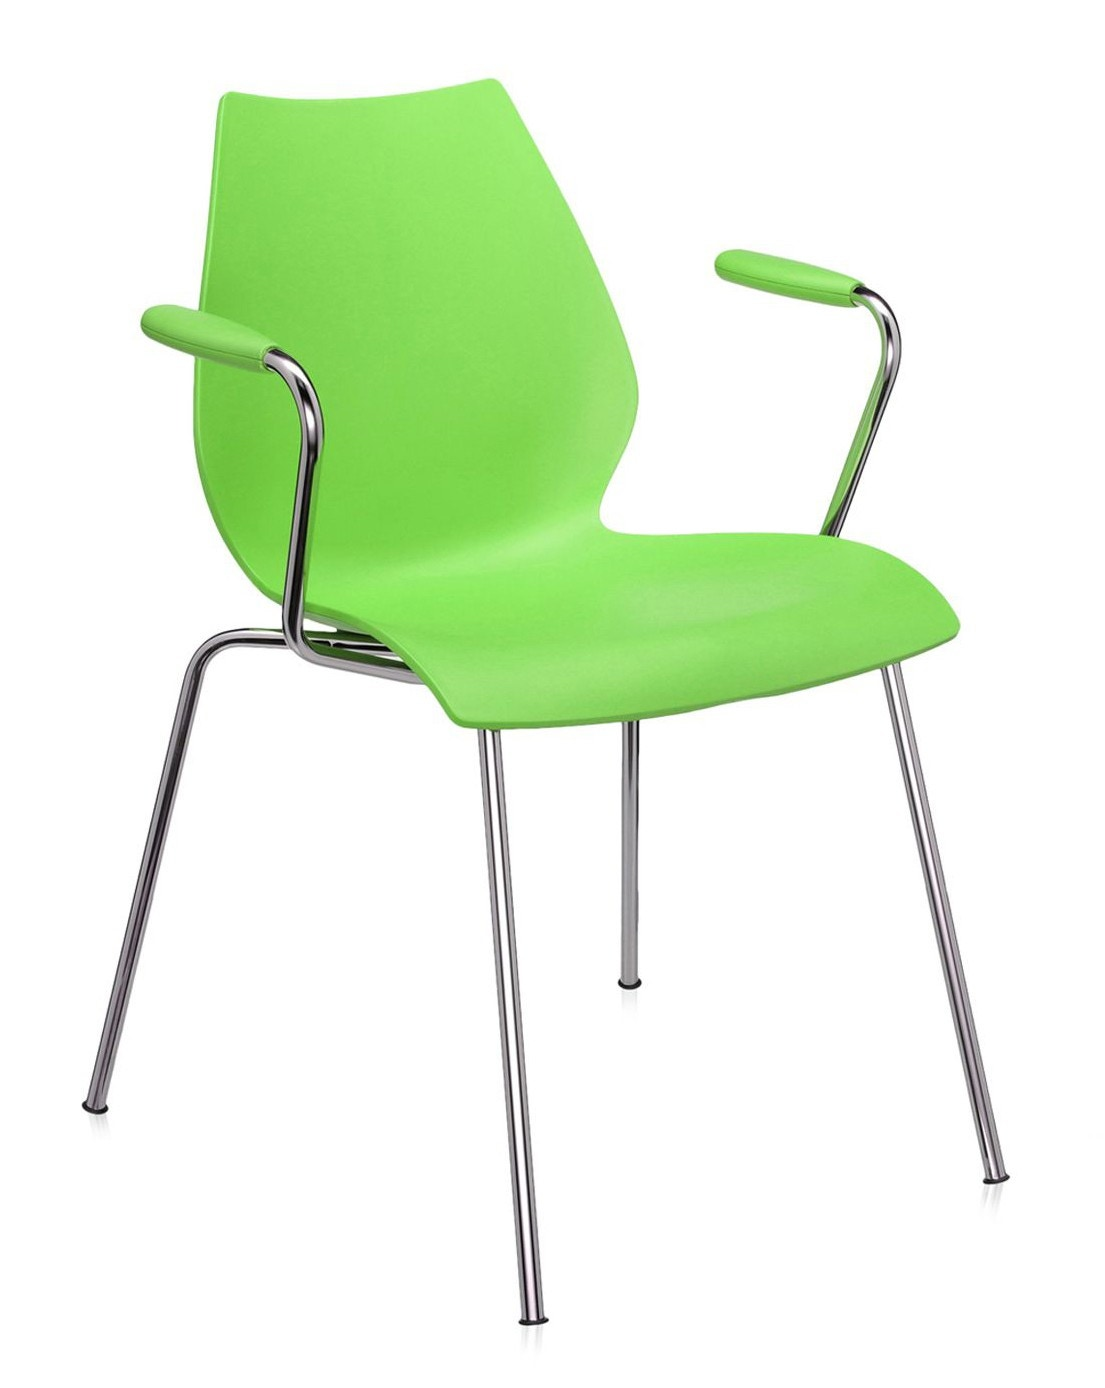 Kartell Maui Chair with Arms (Priced Each, Sold in Sets of 2)